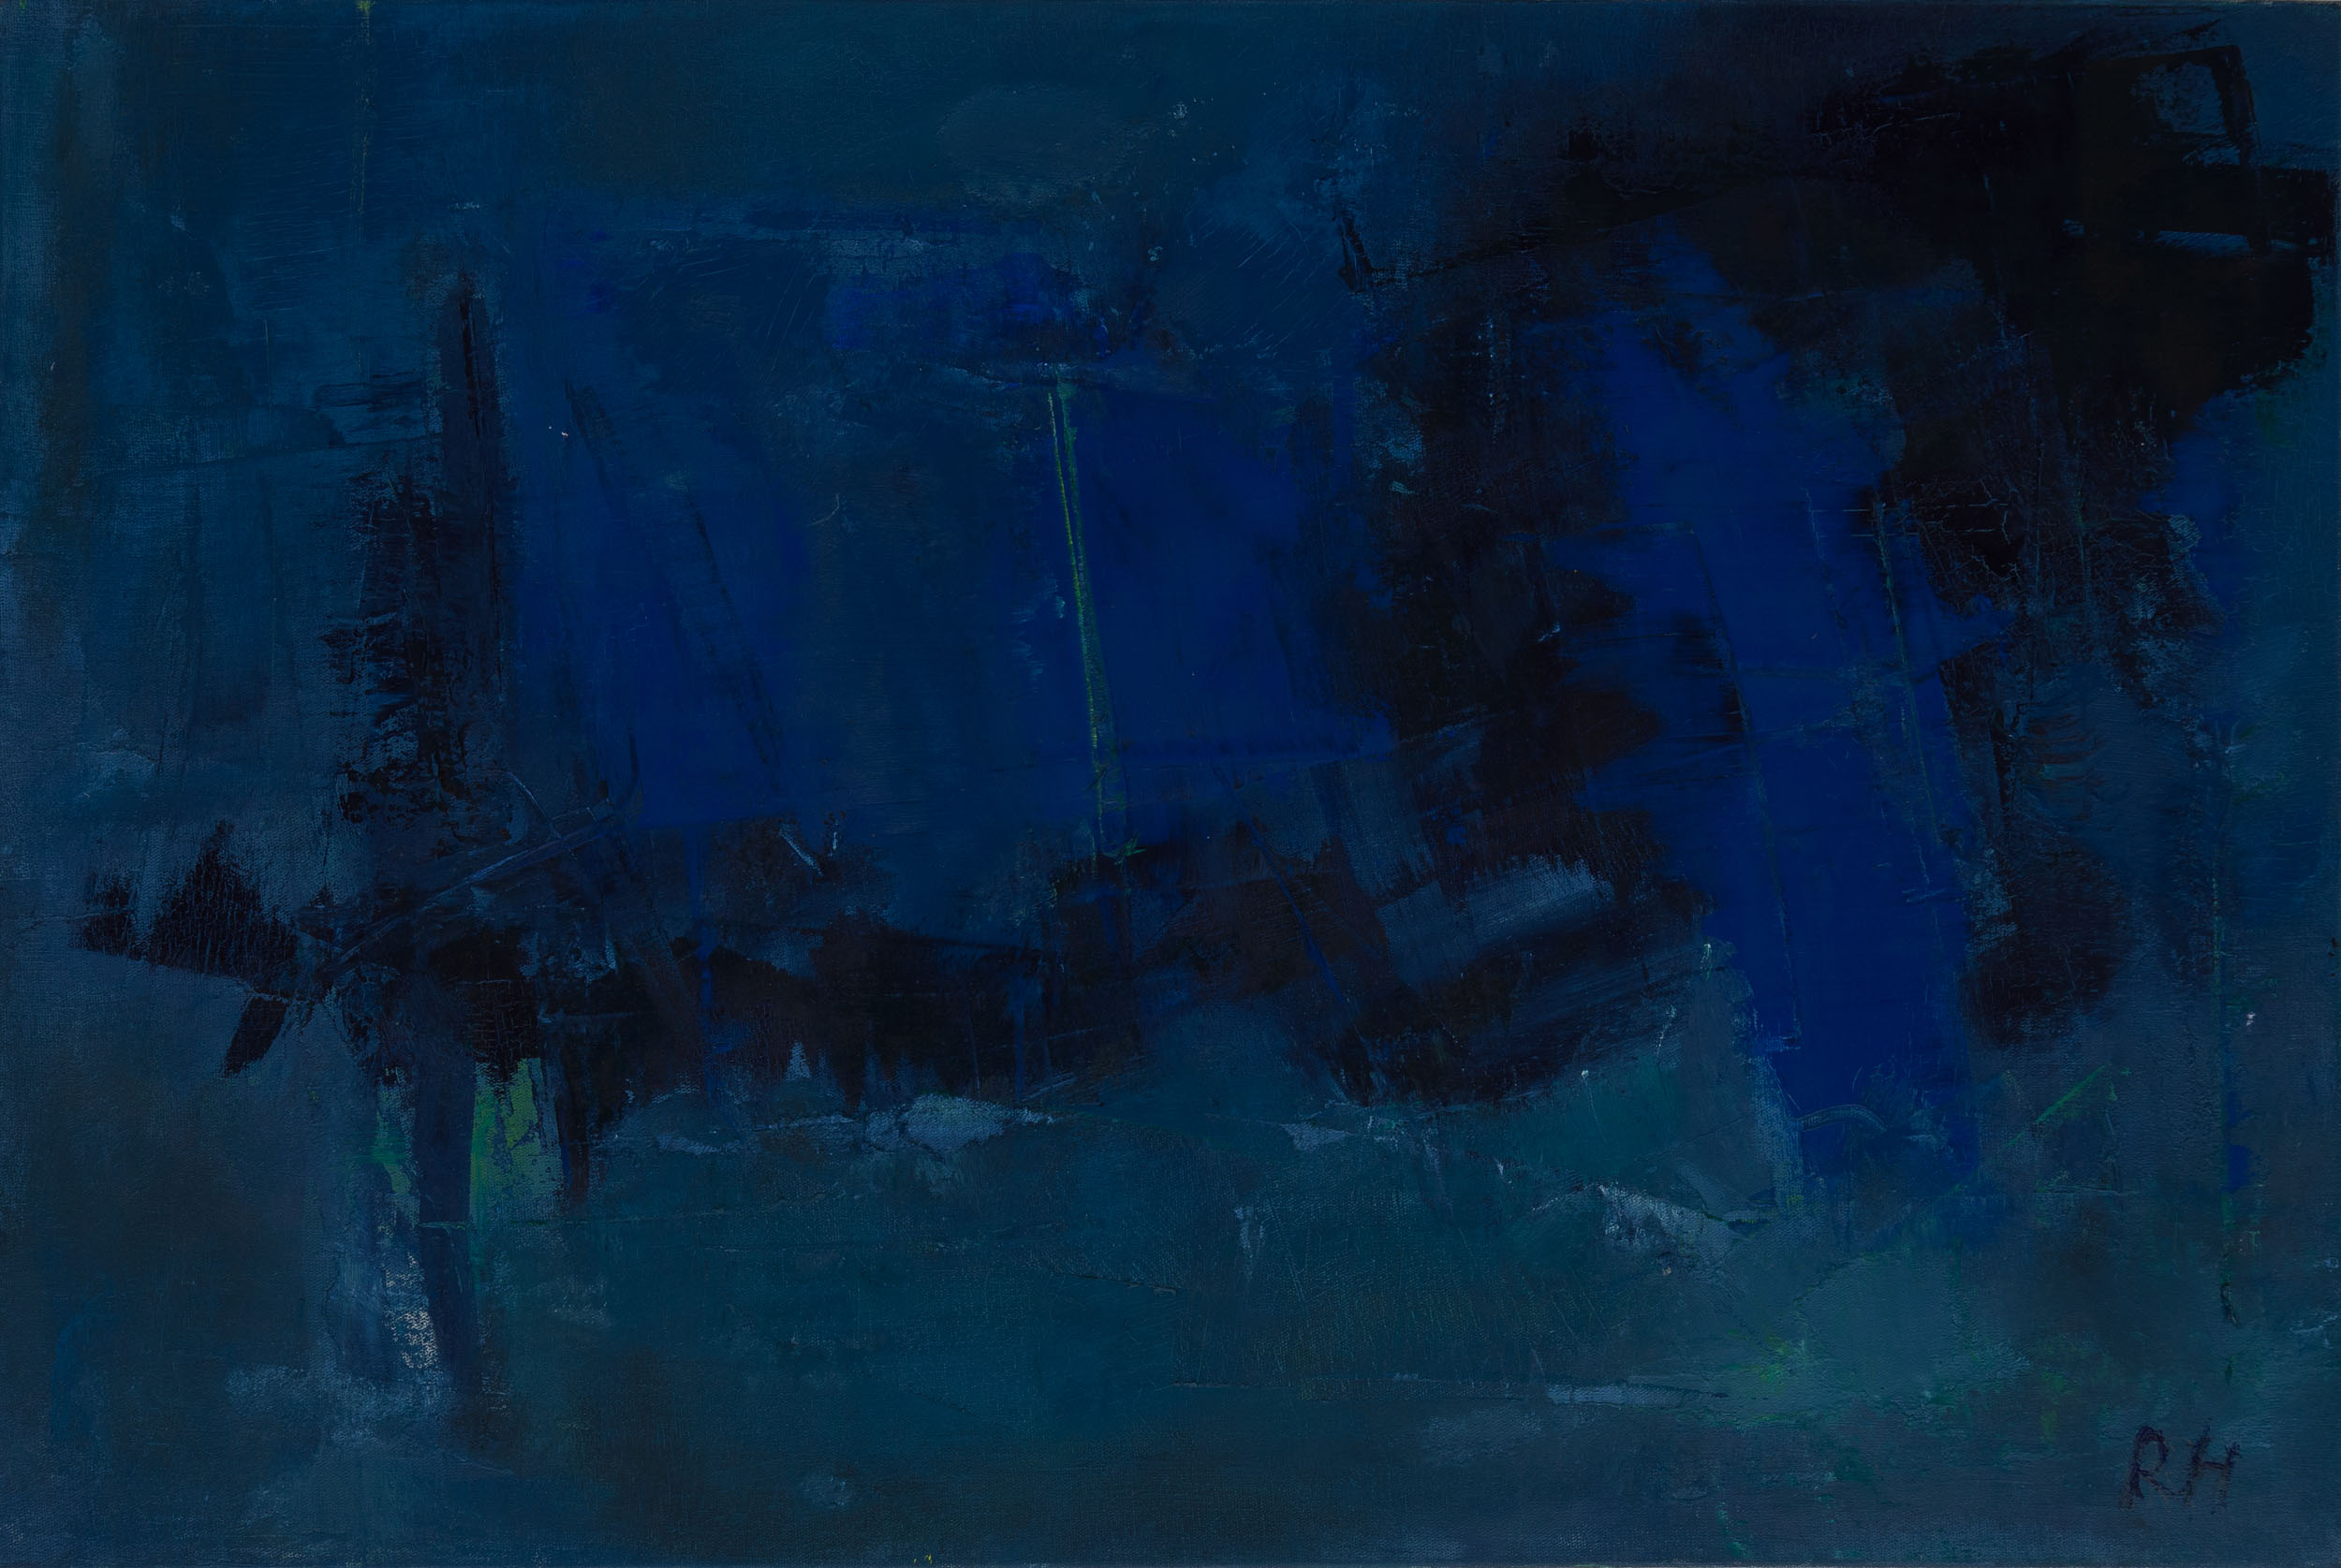 Kind of blue #1, 2015, oil on canvas, 16 x 24 inches